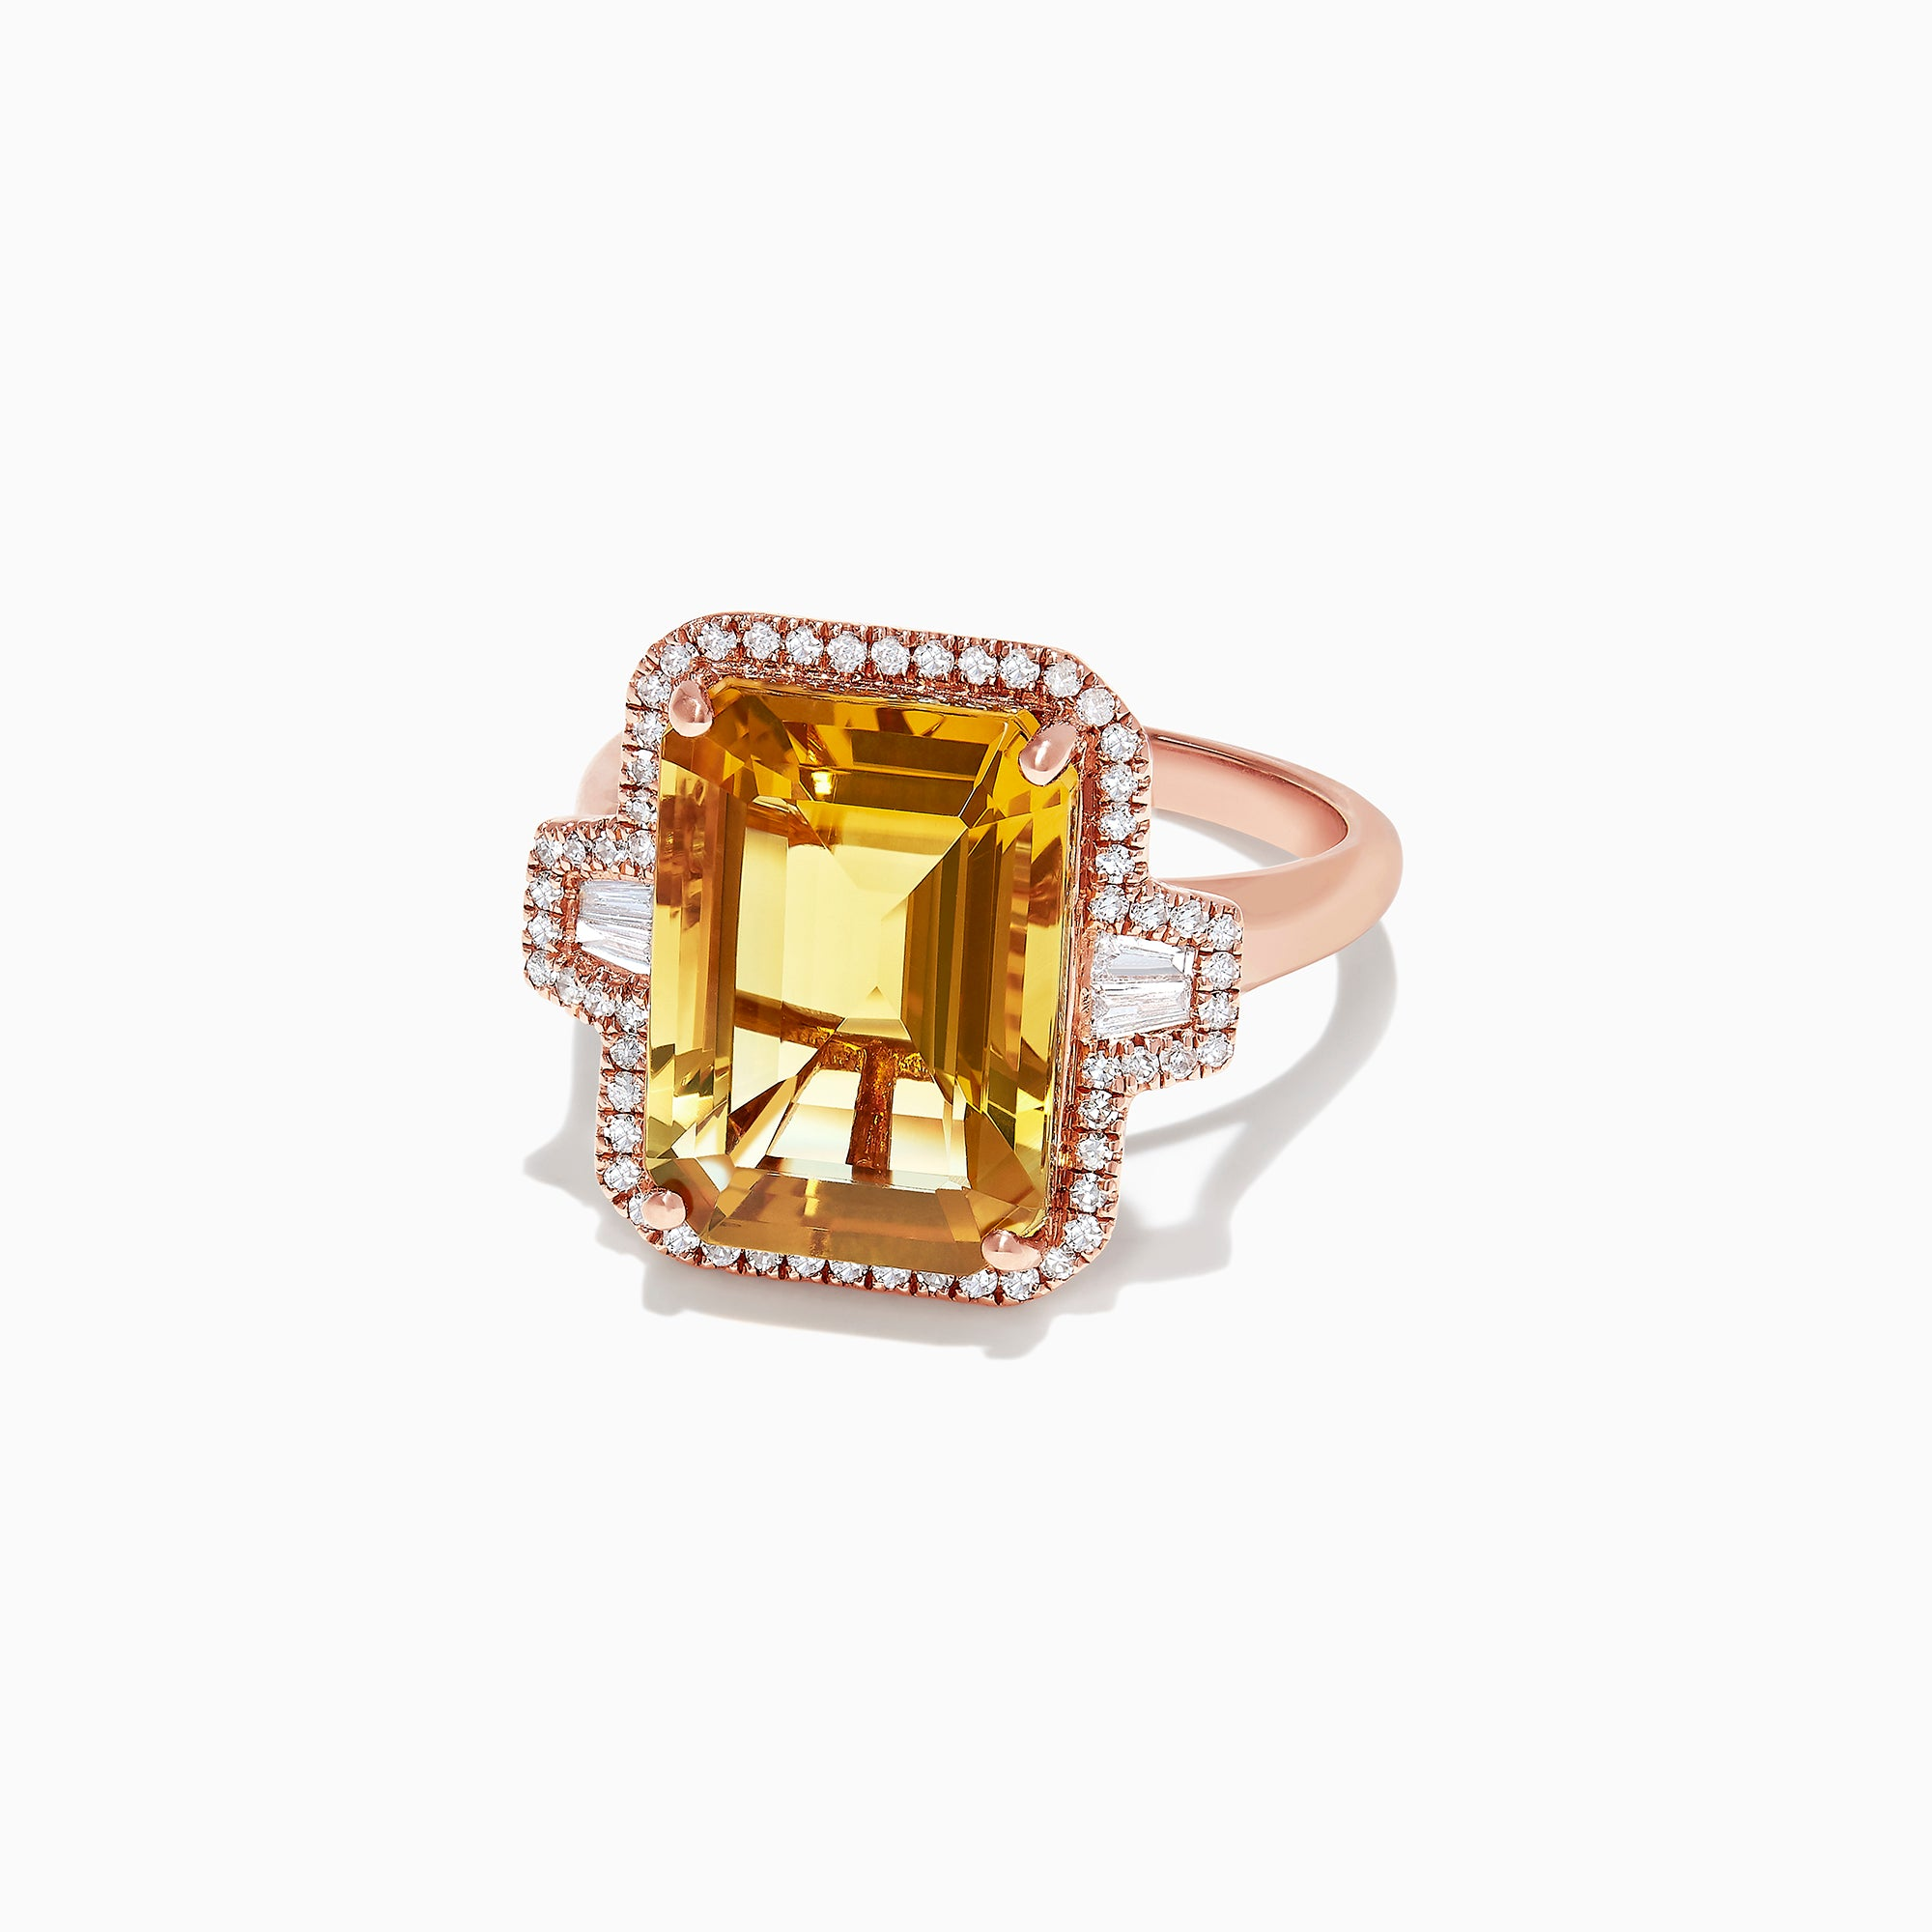 Effy Sunset 14K Rose Gold Citrine and Diamond Cocktail Ring, 6.94 TCW